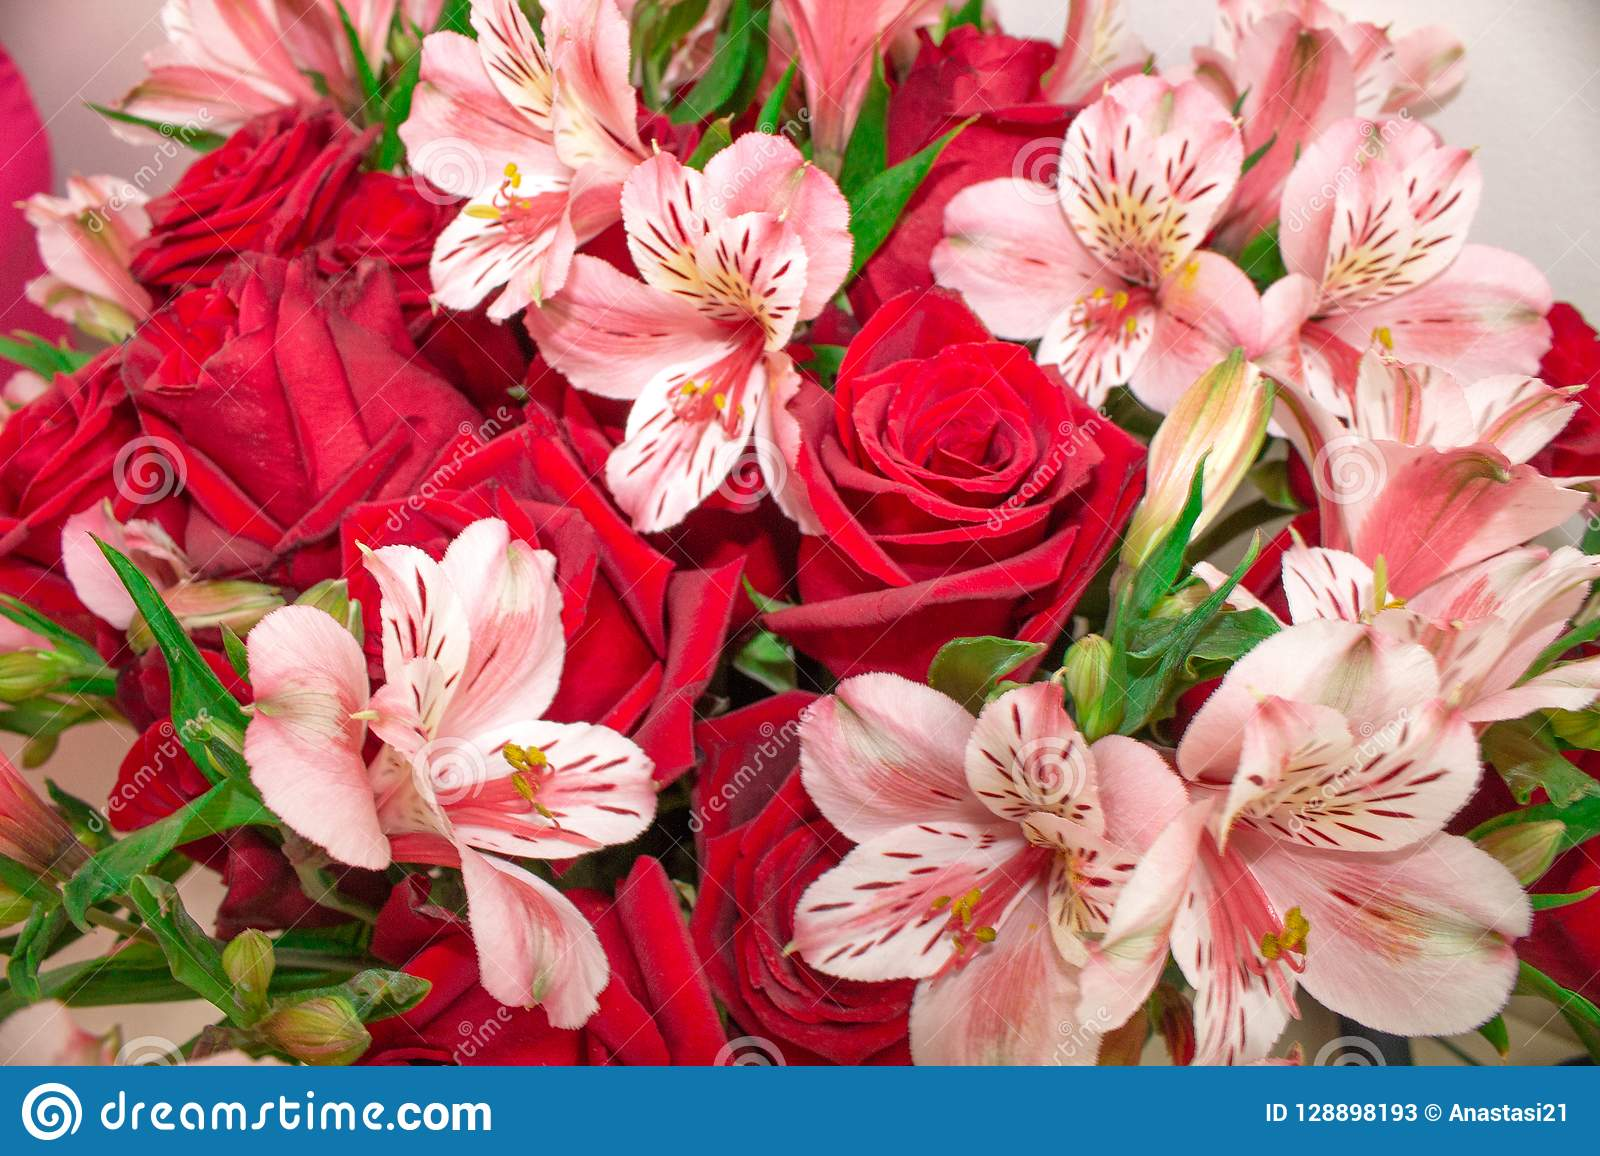 Red bouquet of flowers roses and Alstroemeria. Close-up.